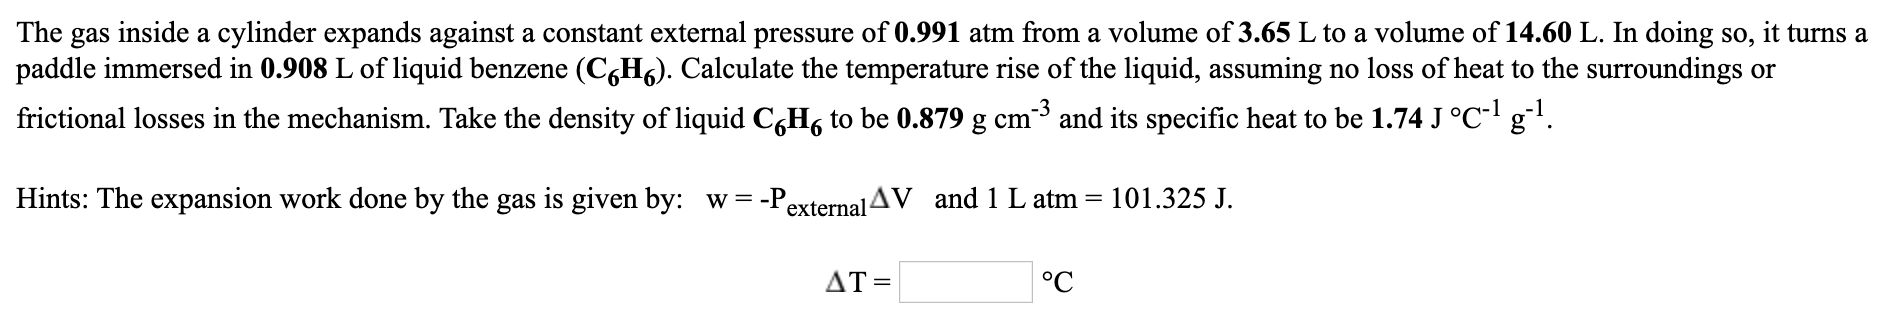 The gas inside a cylinder expands against a constant external pressure of 0.991 atm from a volume of 3.65 L to a volume of 14.60 L. In doing so, it turns a paddle immersed in 0.908 L of liquid benzene (C6H6). Calculate the temperature rise of the liquid, assuming no loss of heat to the surroundings or frictional losses in the mechanism. Take the density of liquid CgH, to be 0.879 g cm3 and its specific heat to be 1.74 J °C- g. Hints: The expansion work done by the gas is given by: w = -P external AV and 1 L atm = 101.325 J. AT = °C